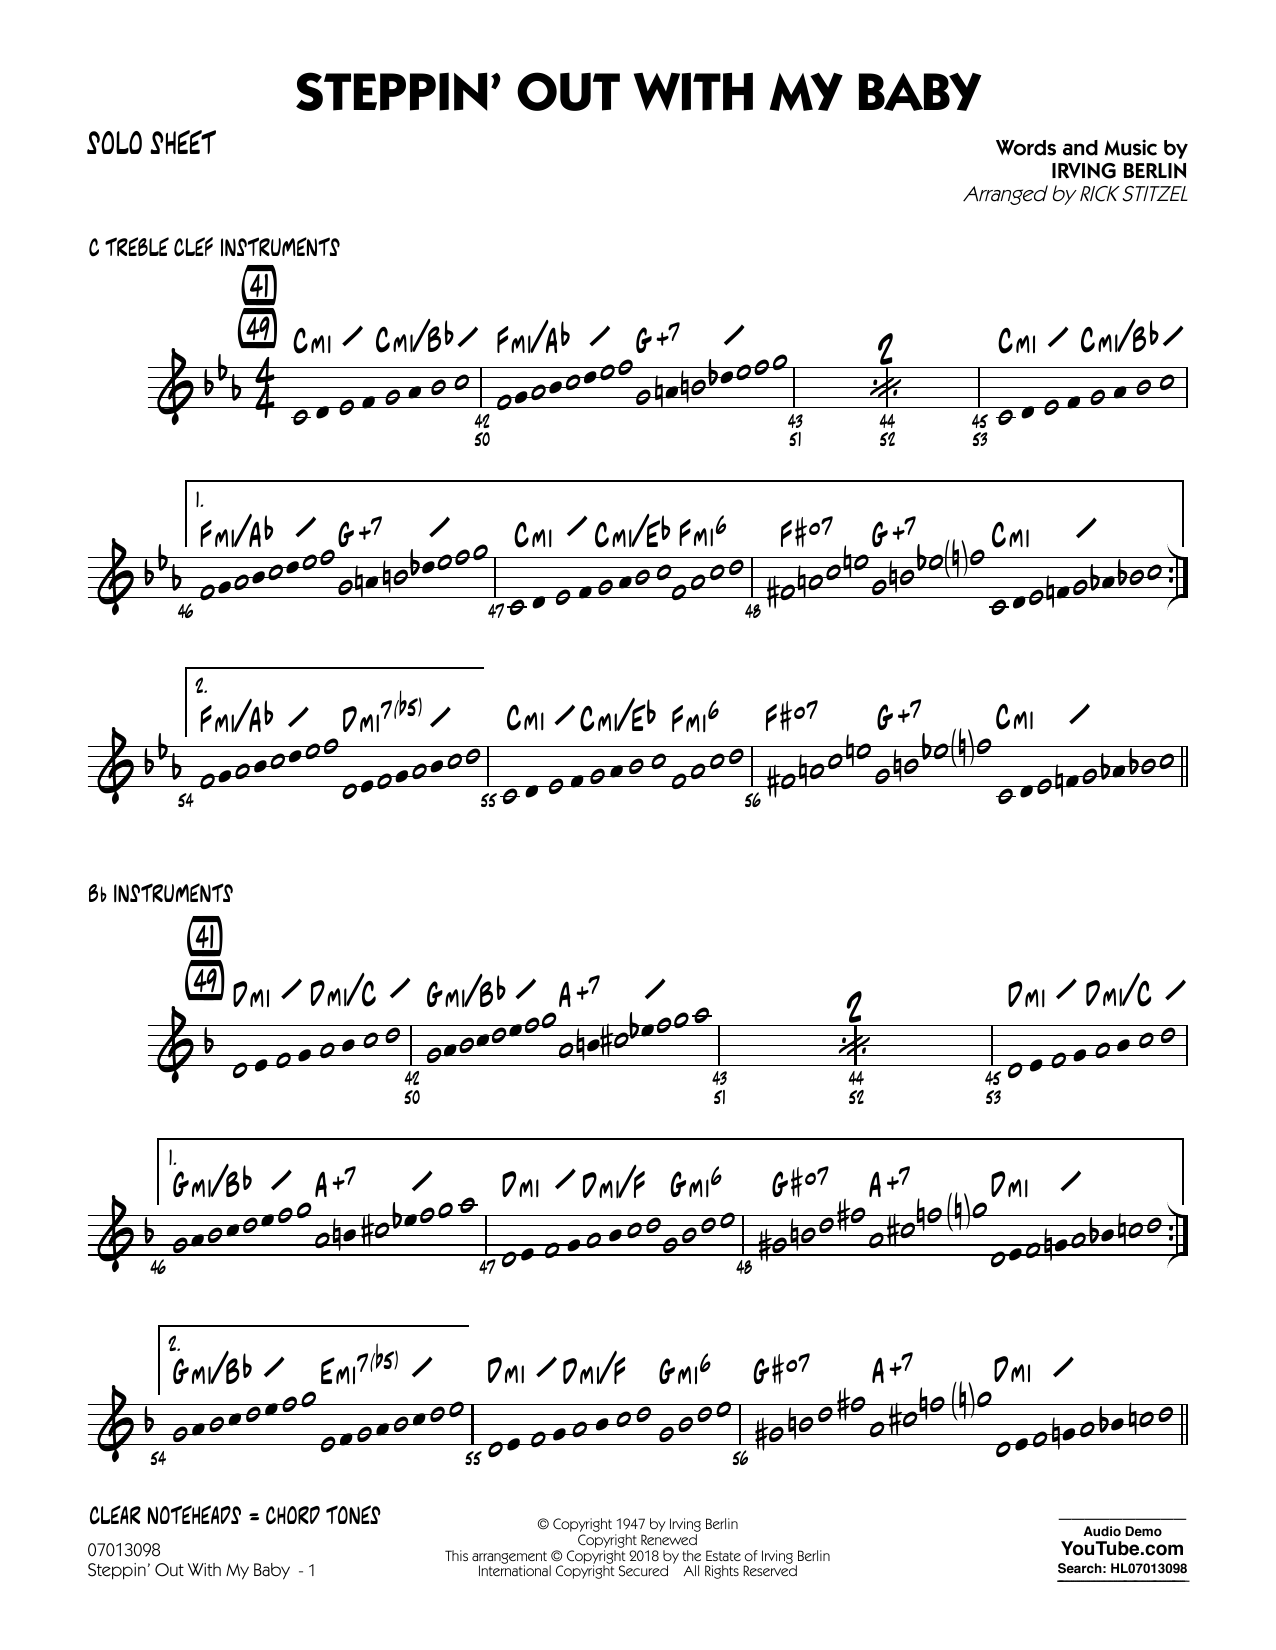 Rick Stitzel Steppin' Out with My Baby - Solo Sheet sheet music notes and chords. Download Printable PDF.